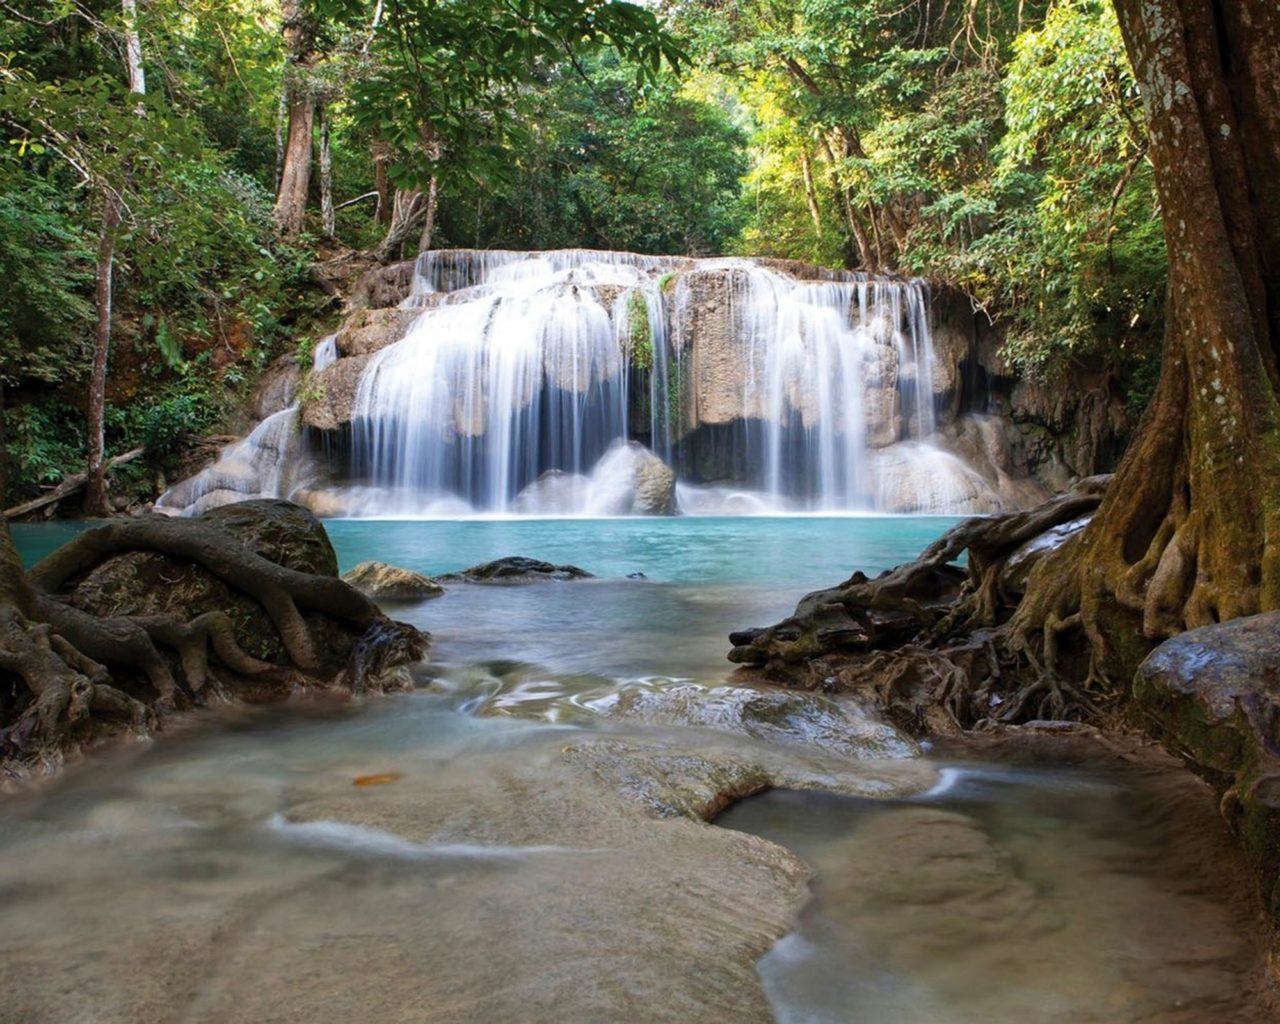 Iphone Wallpapers Hd Free Download Waterfall Erawan National Park Thailand 017458